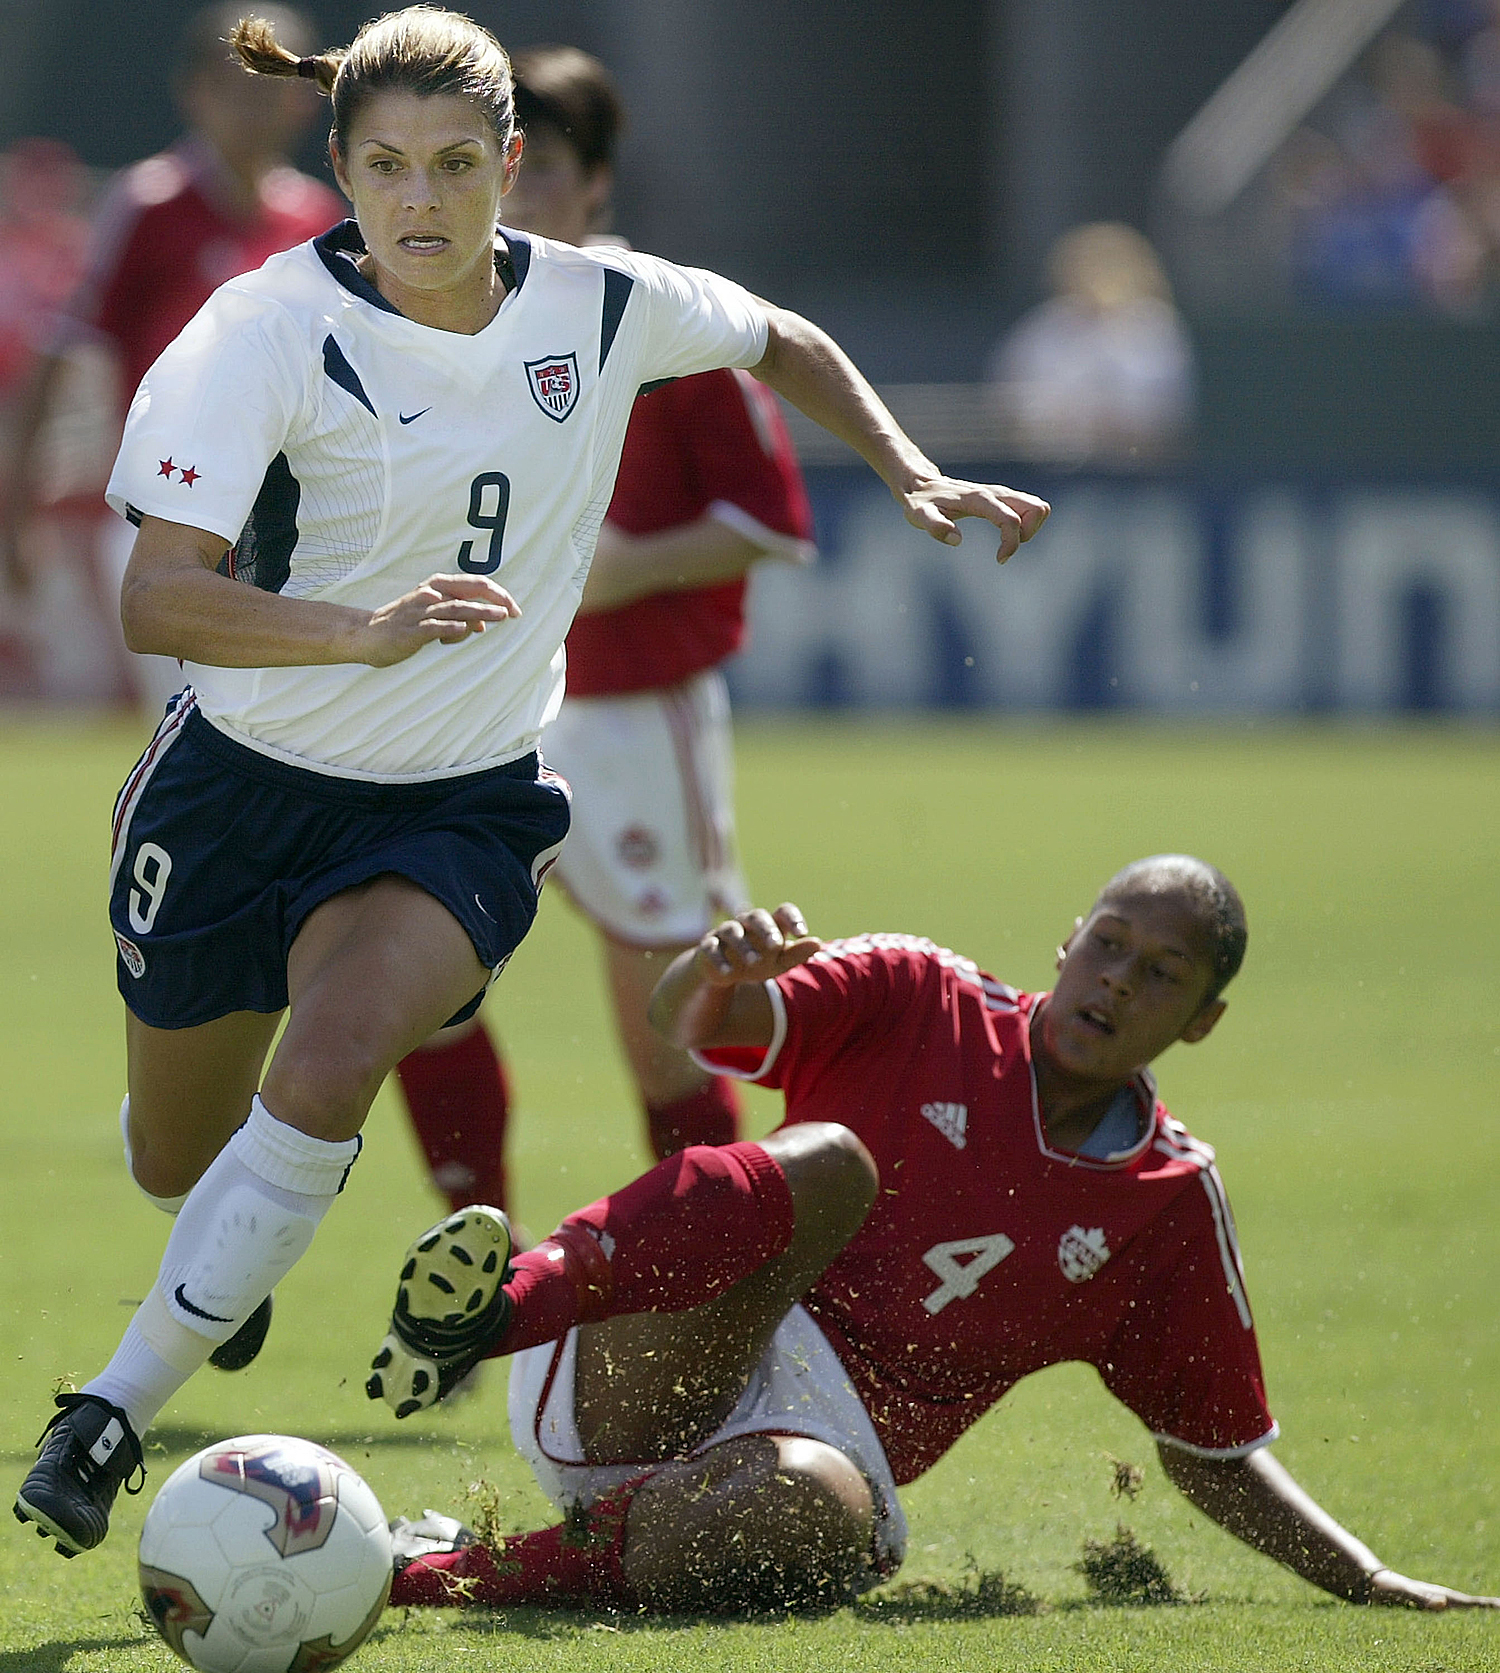 CARSON, CA - OCTOBER 11:  Mia Hamm #9 of the USA dribbles against the defense of Sasha Andrews #4 of Canada during the the third place match of the FIFA Women's World Cup on October 11, 2003 at the Home Depot Center in Carson, California.  (Photo by Jeff Gross/Getty Images)